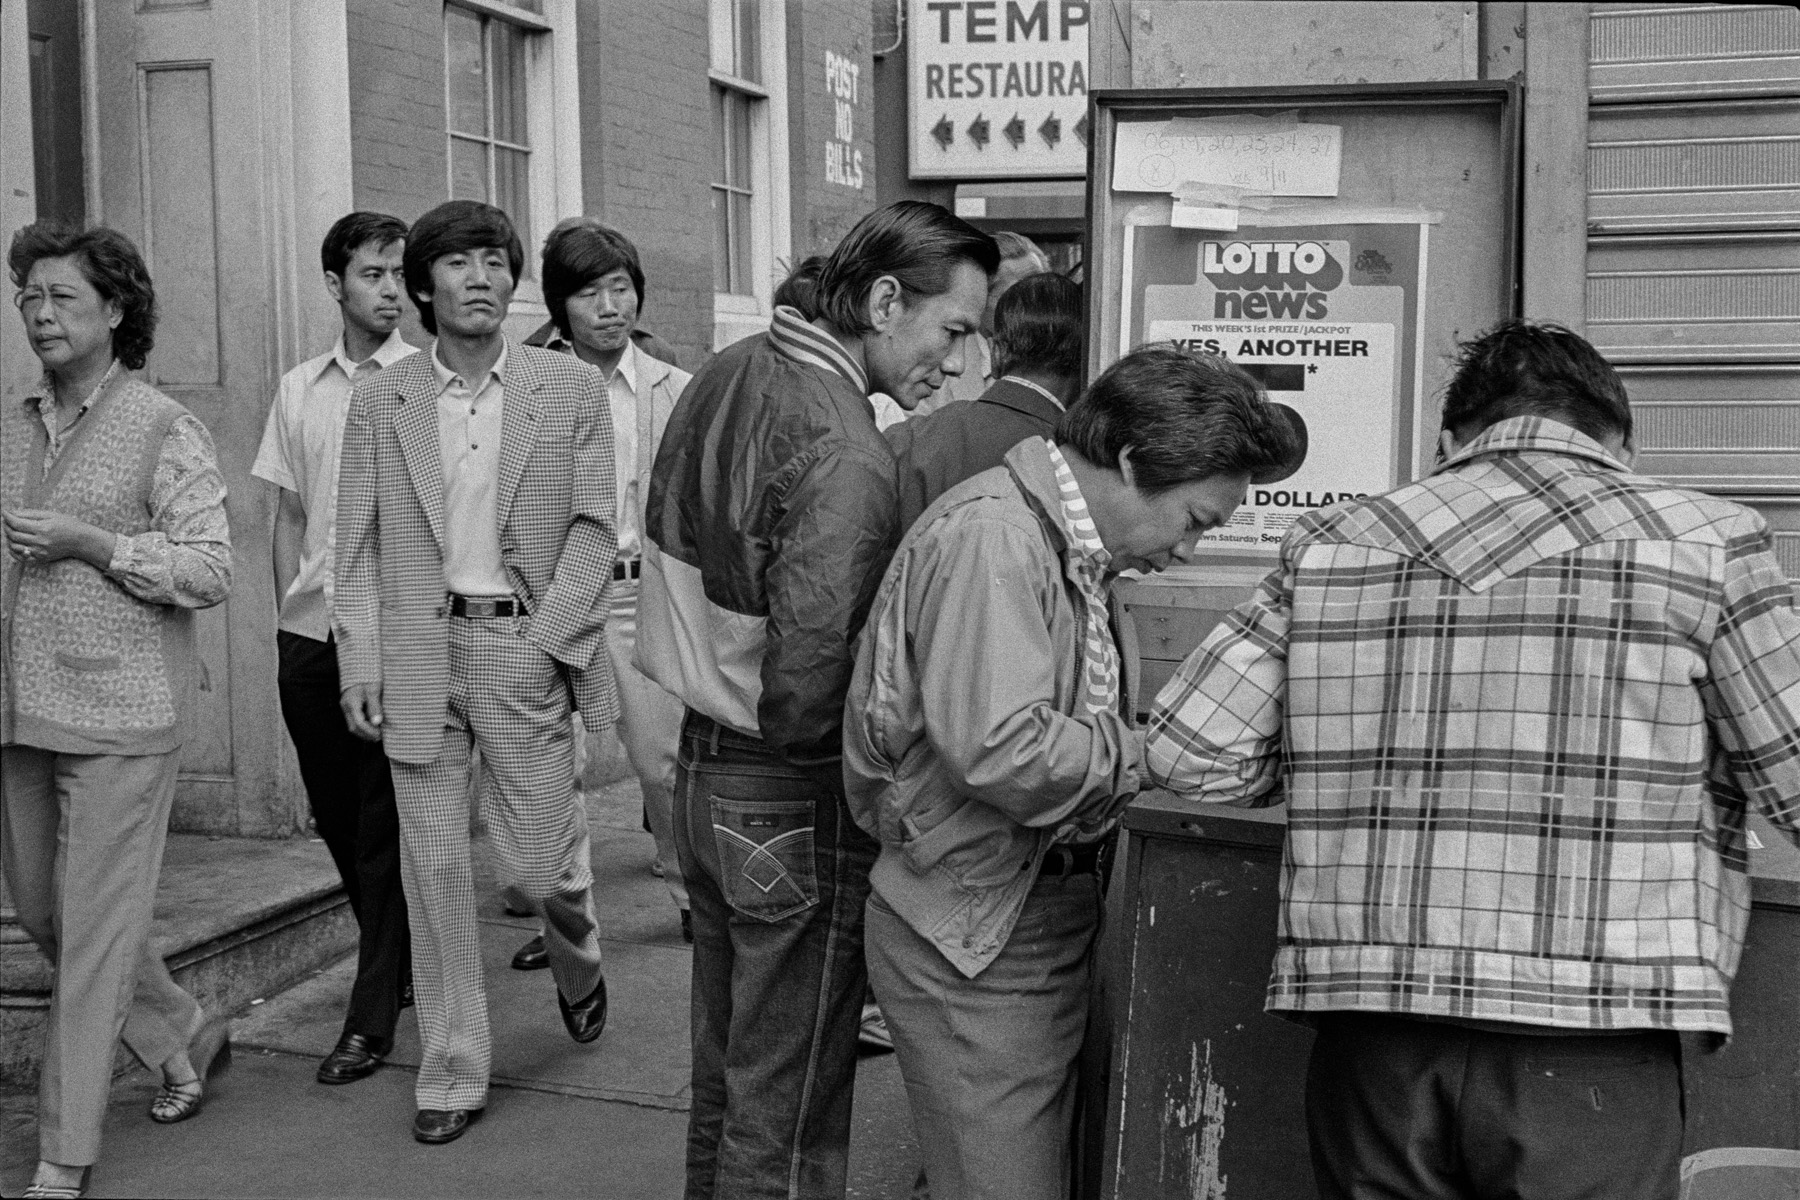 In front of 18 Bowery, New York Chinatown, 1982